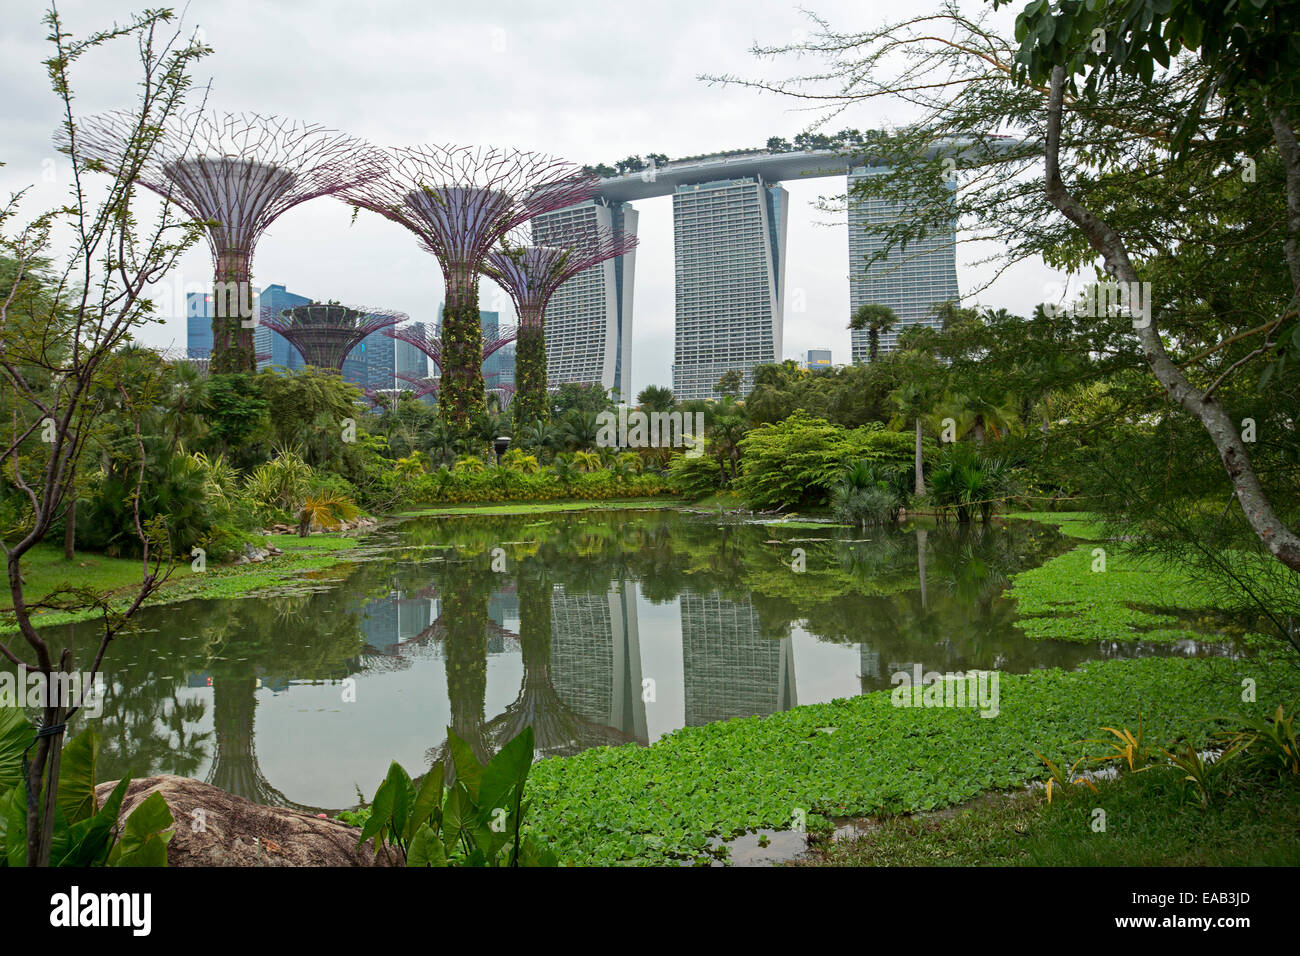 Marina Bay Sands casino resort / hotel, rising beside artificial trees of Gardens By The Bay & reflected in calm Stock Photo